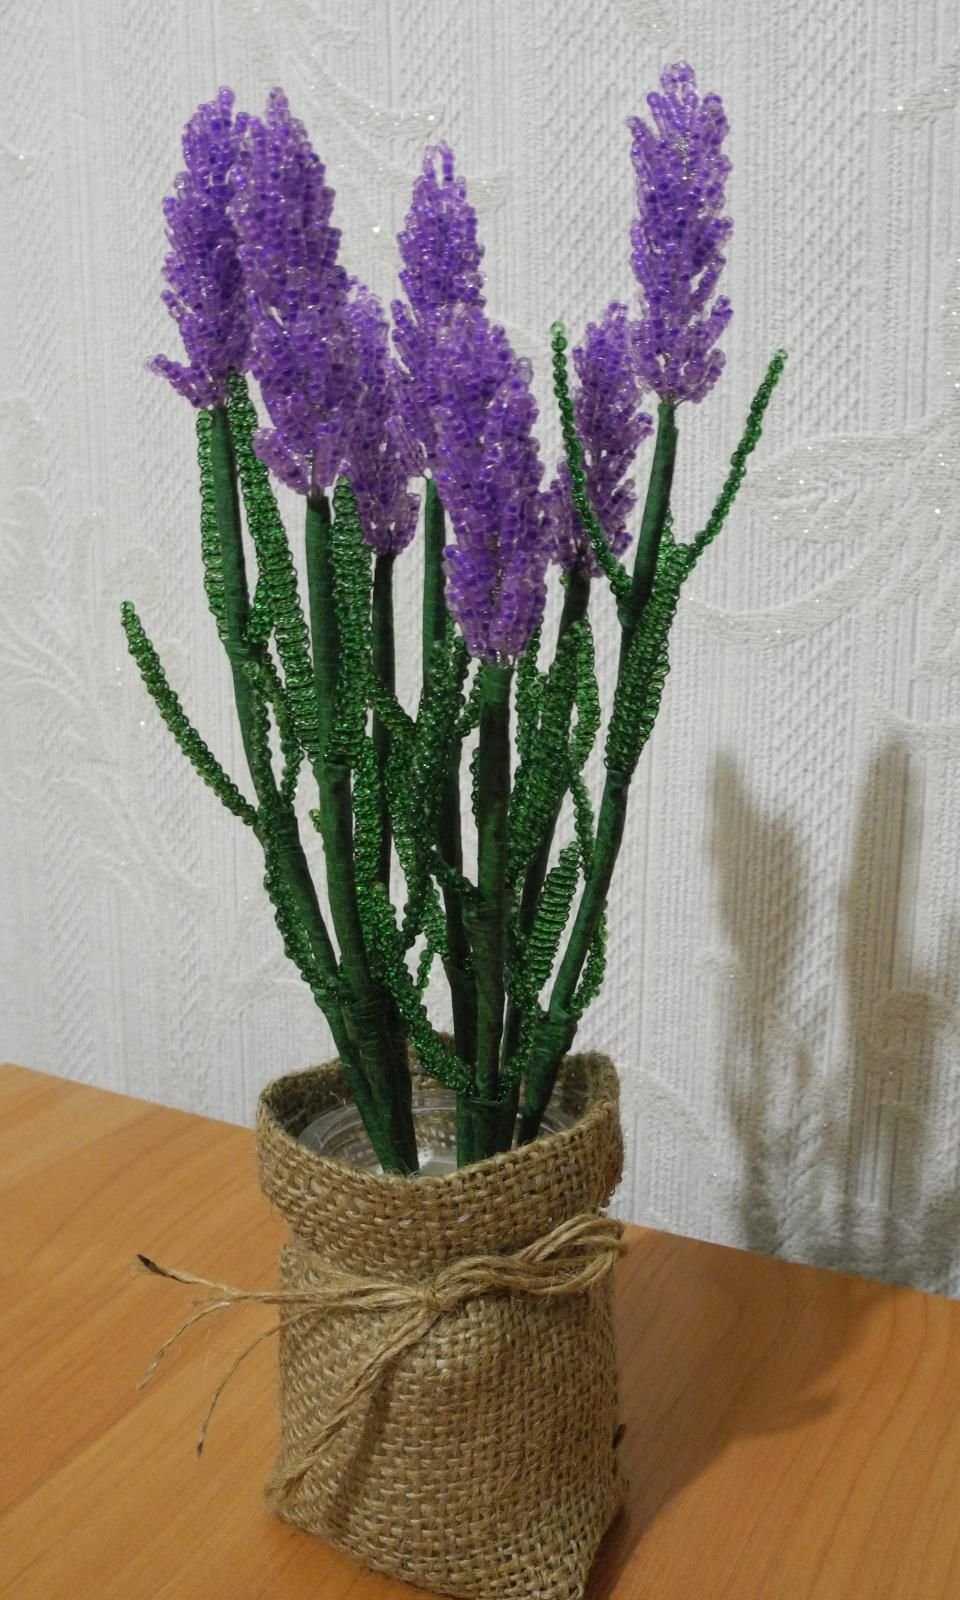 homedecor handicraft creativeidea handmade beads bouquet lavender decoration diy